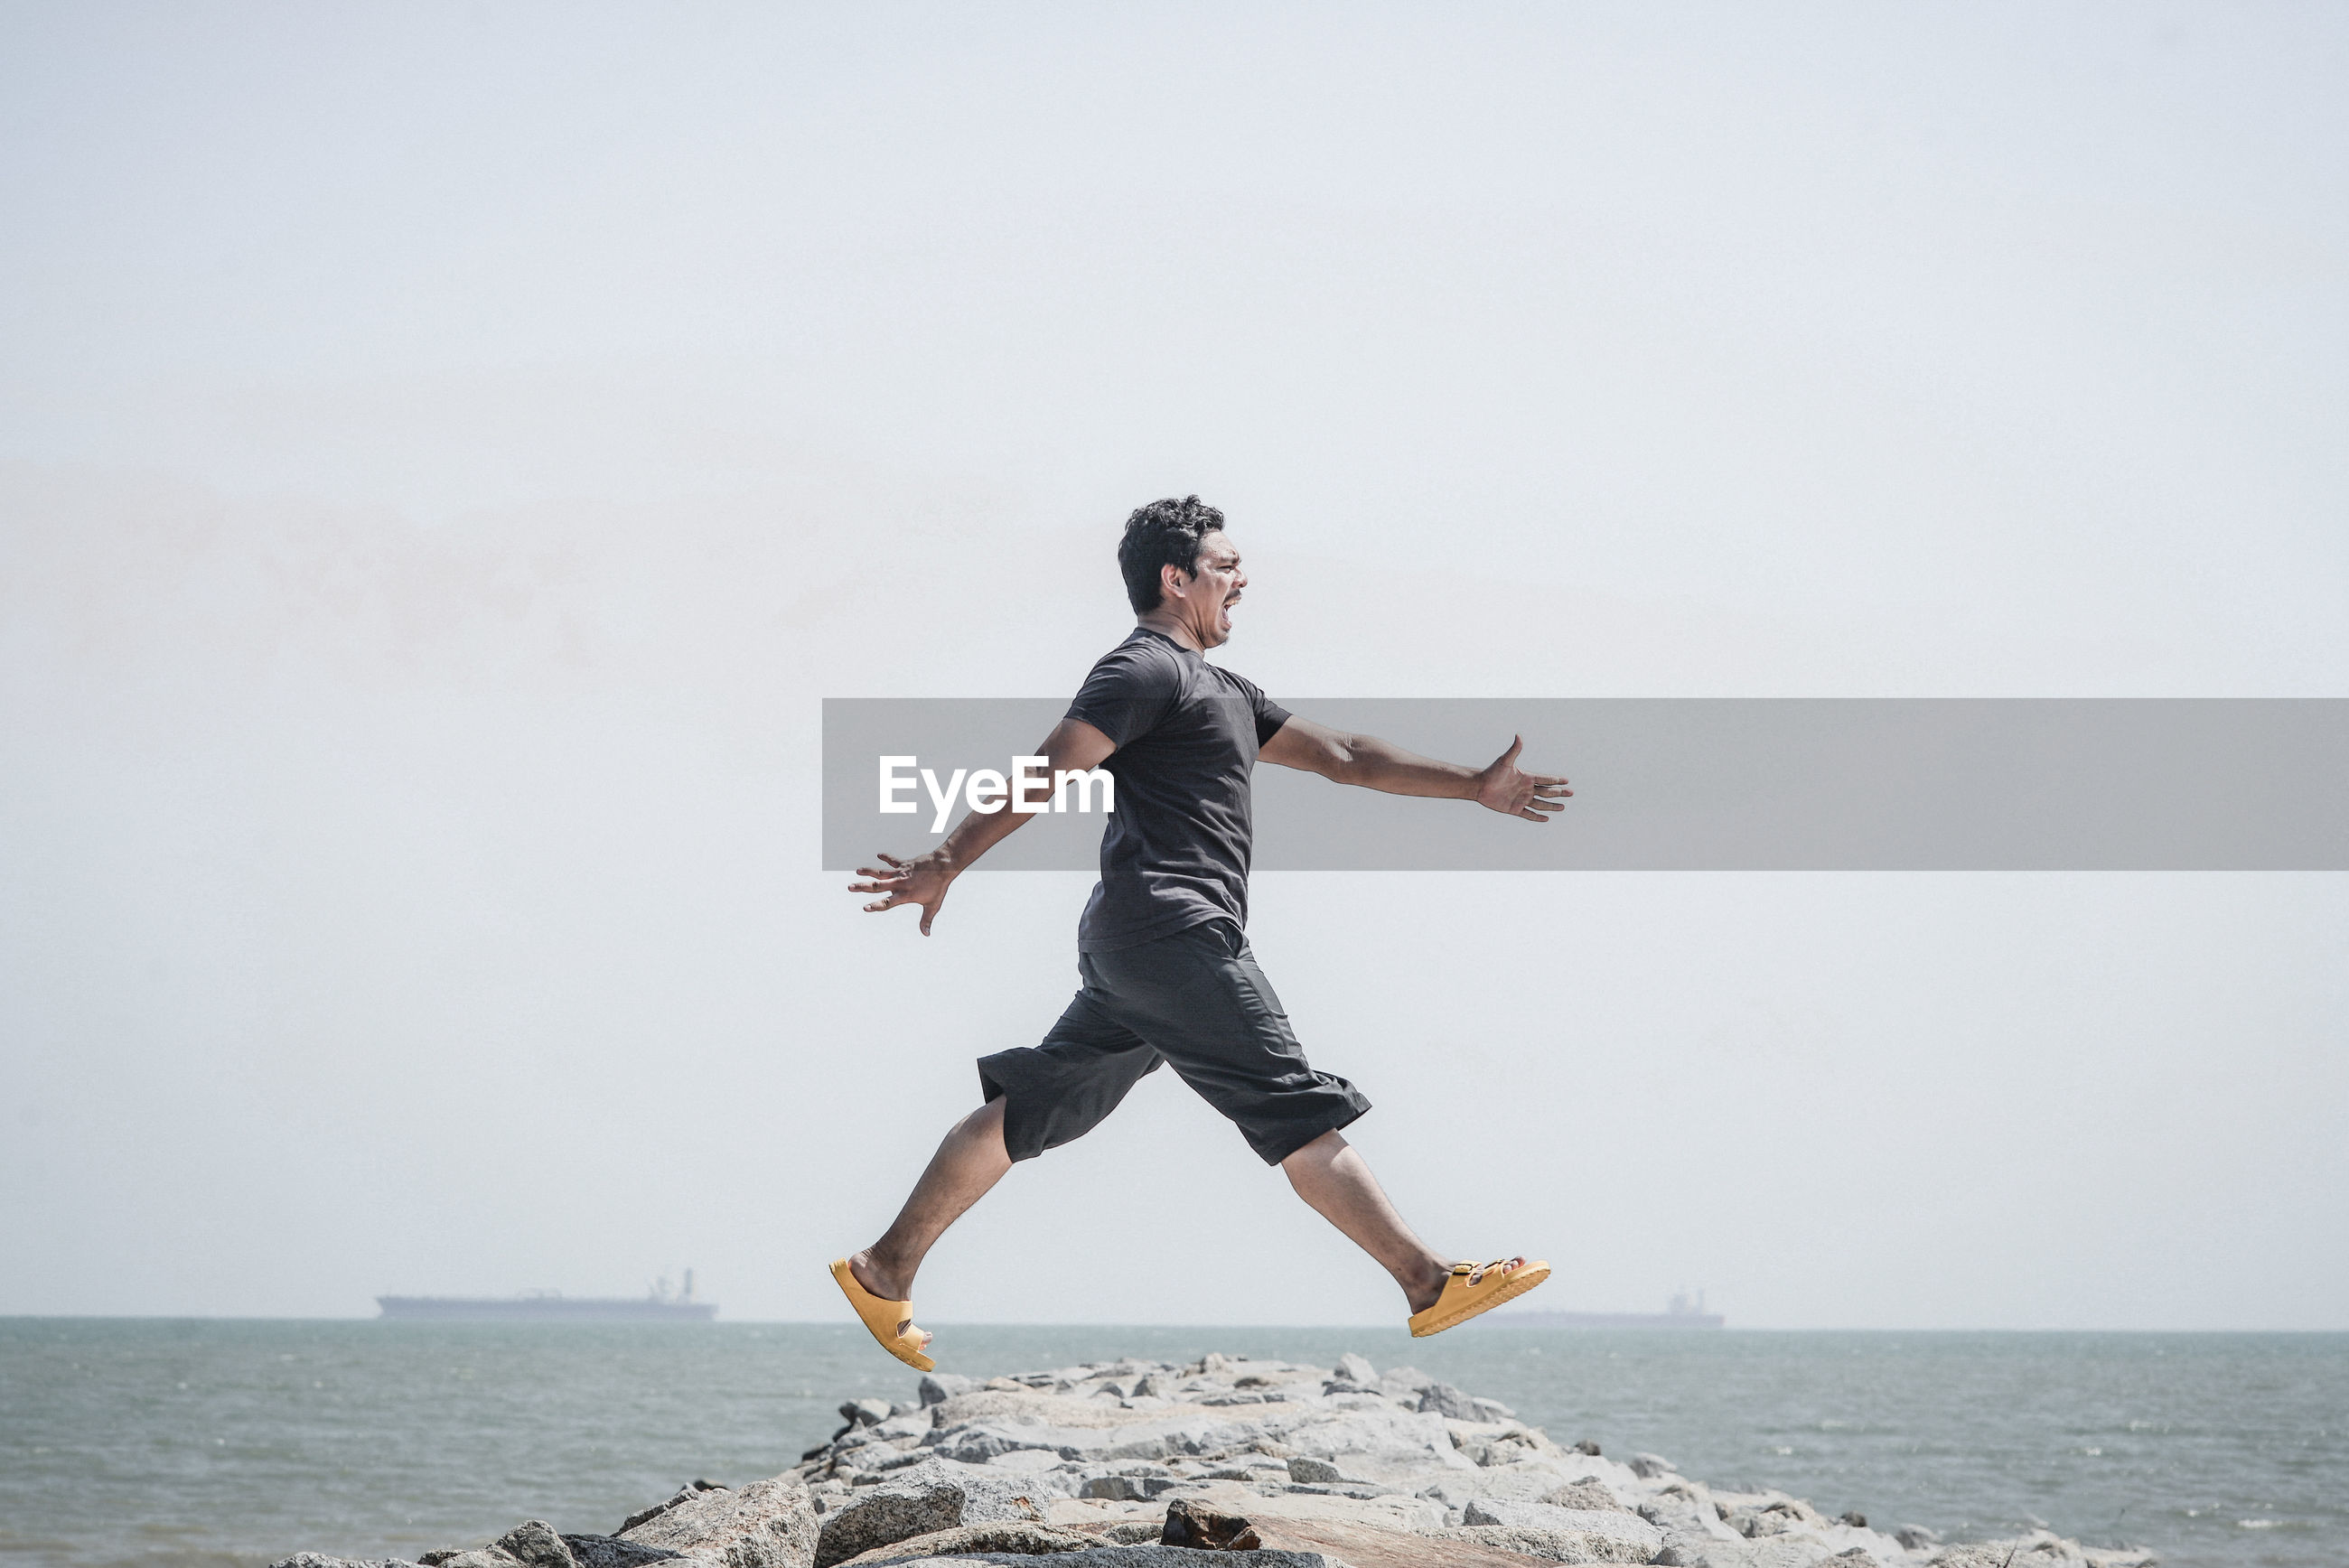 Full length of man jumping on rock at beach against sky